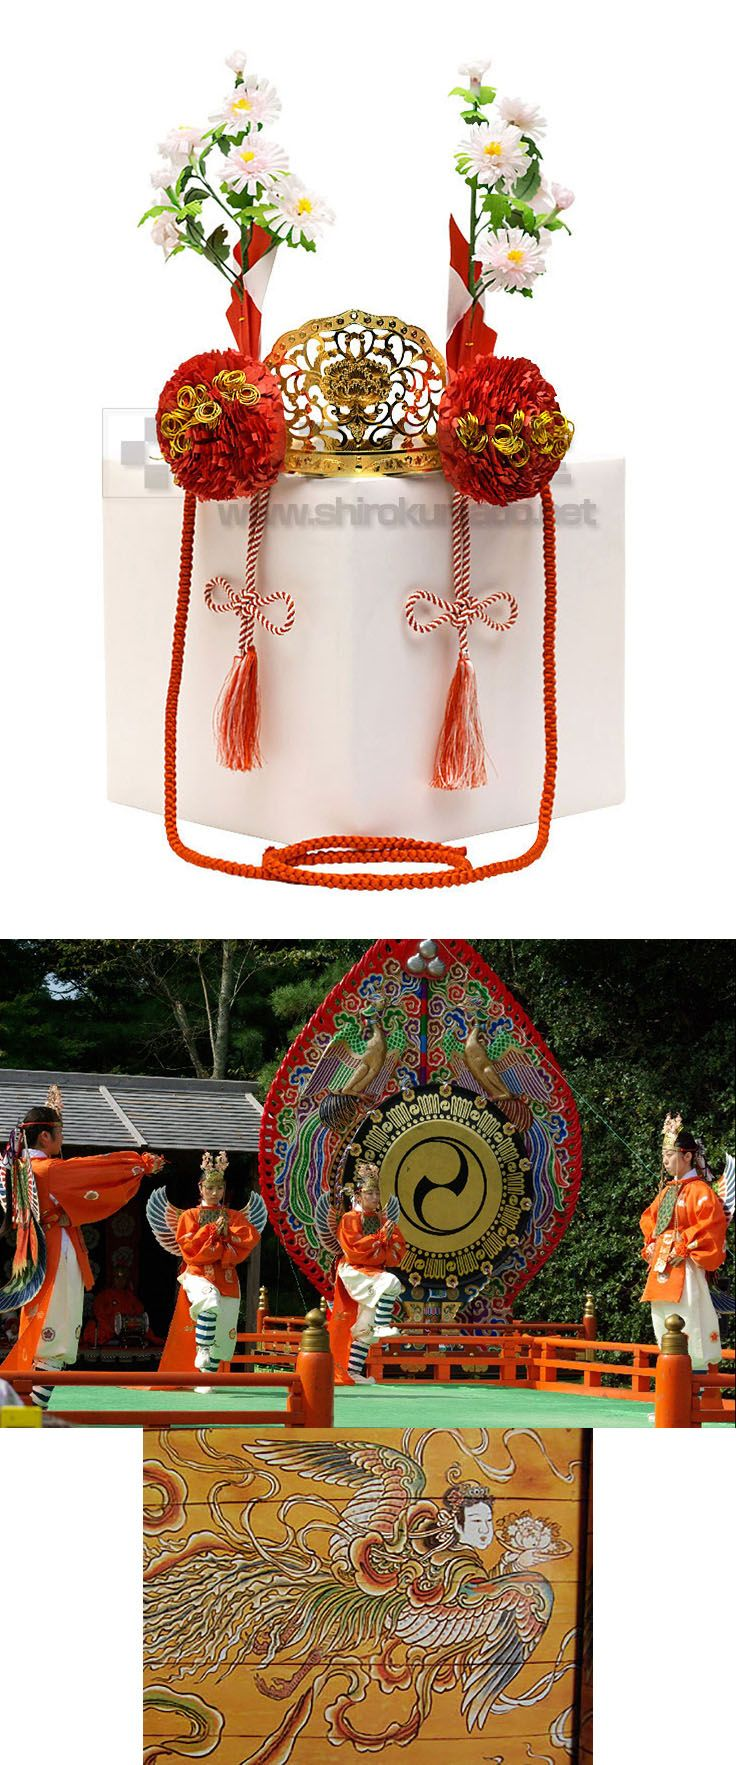 Karyôbin crown (迦陵頻天冠), Karyôbin is a program of Gagaku, Japanese traditional music and dance. The content is Karyôbin, bird living on heaven, sing the beautiful voice, dance and play. The bird is the imaginary creature. The upper half of the body is a heavenly maiden and the lower half of the body is a bird.